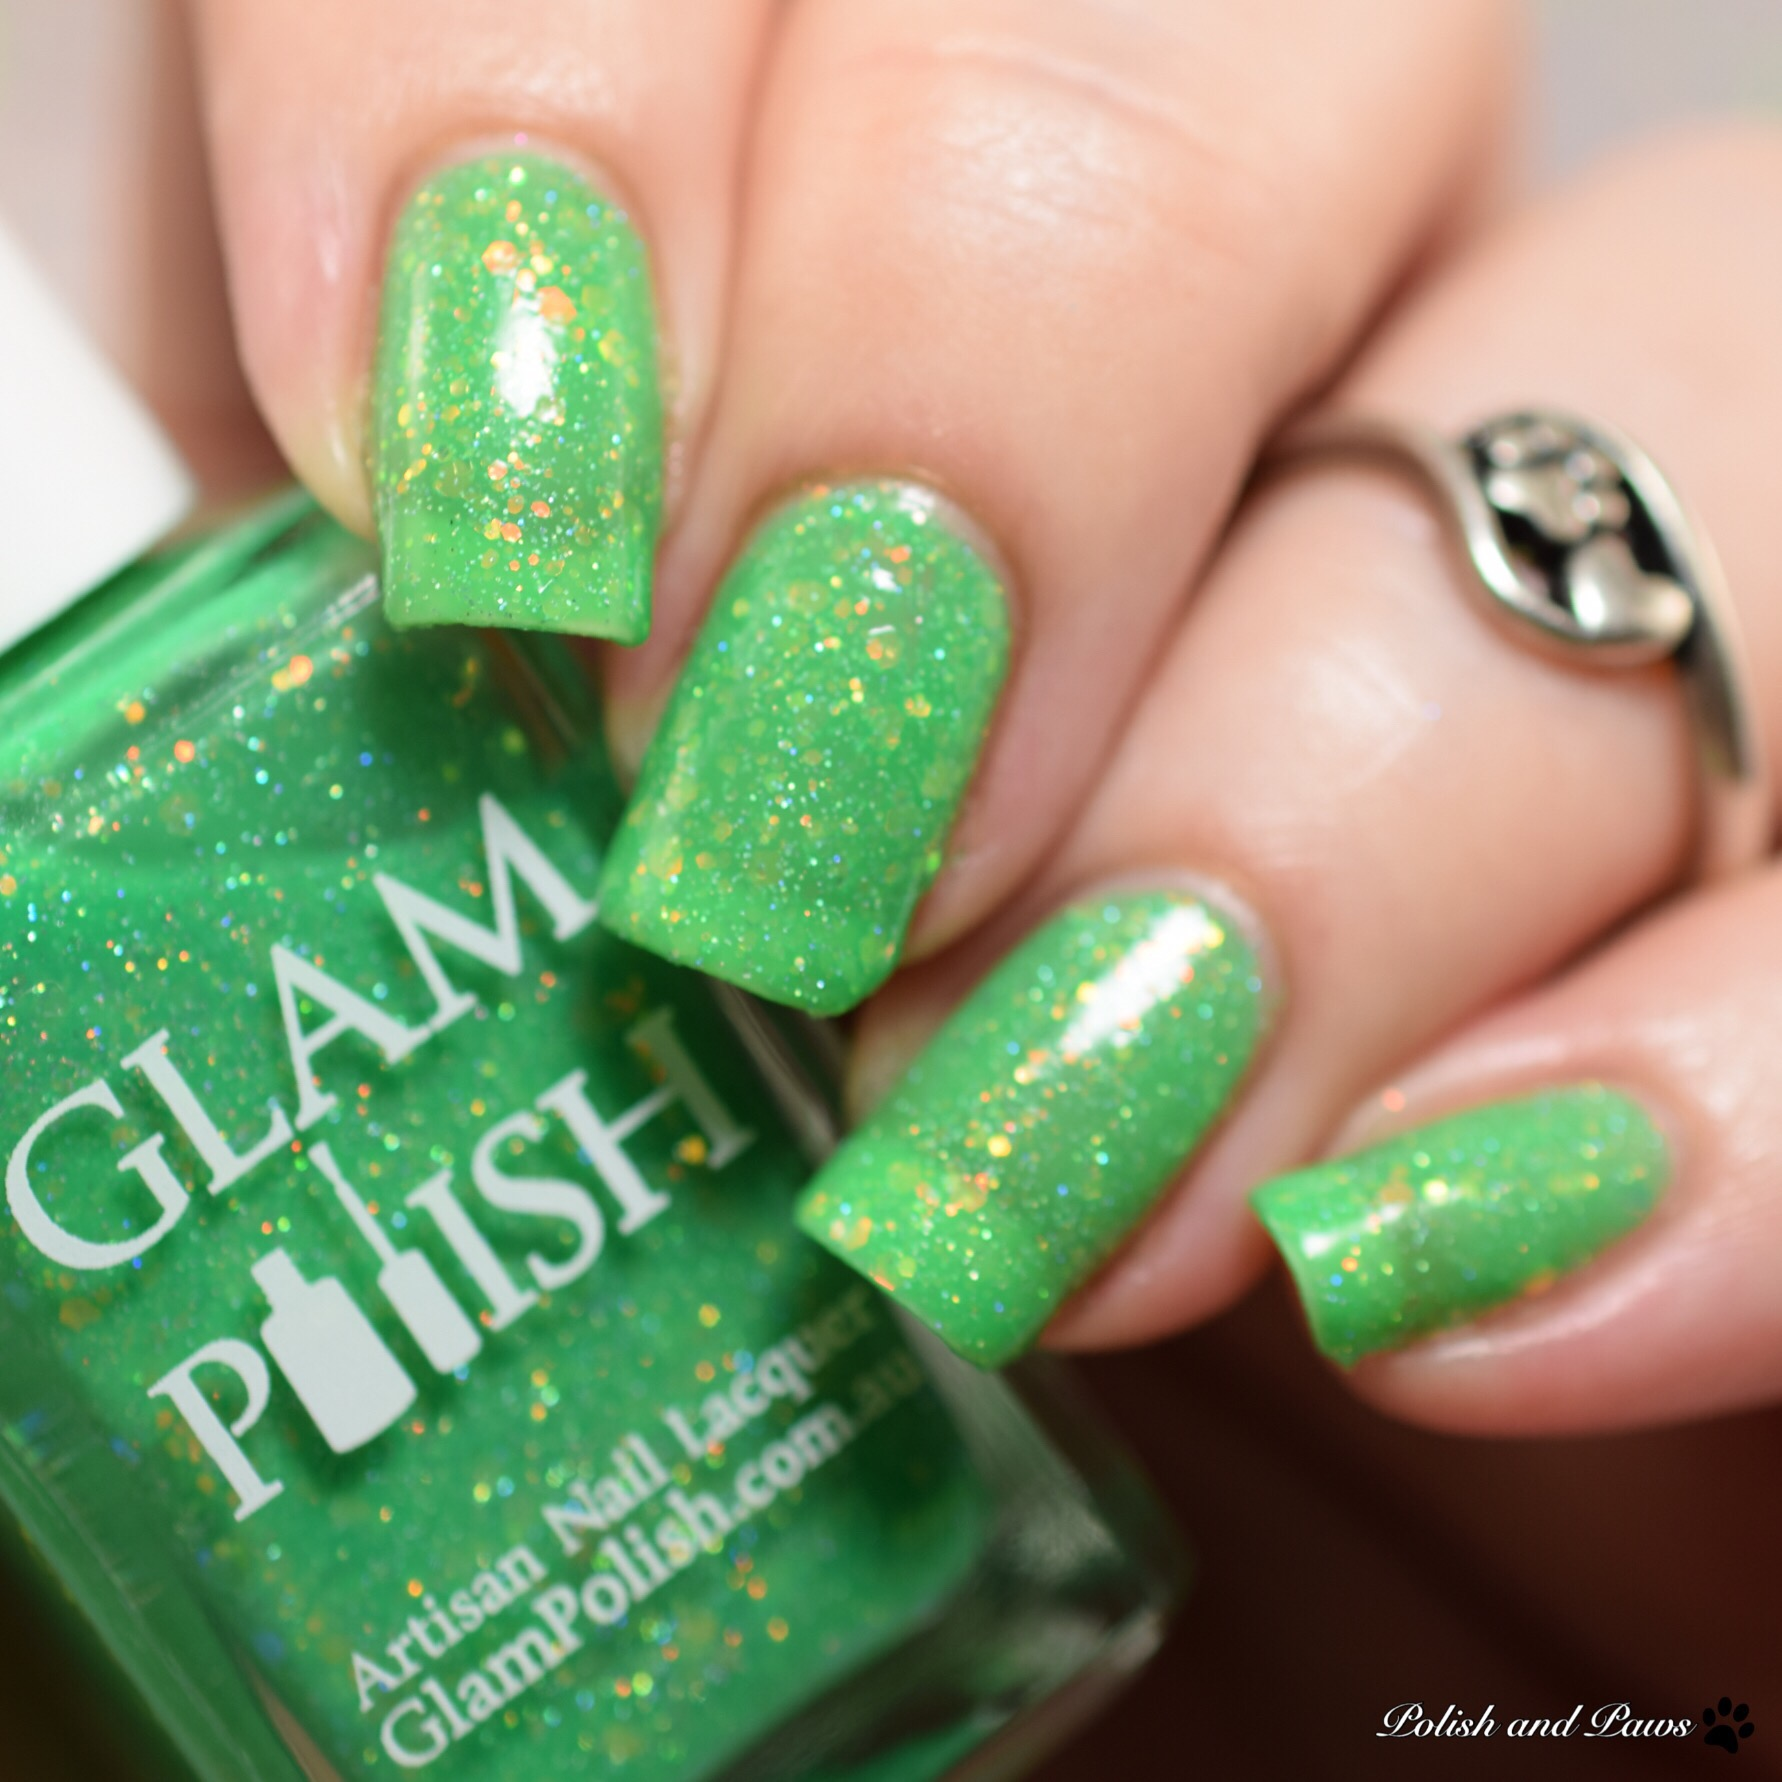 Glam Polish That's a Bowtruckle... Right!